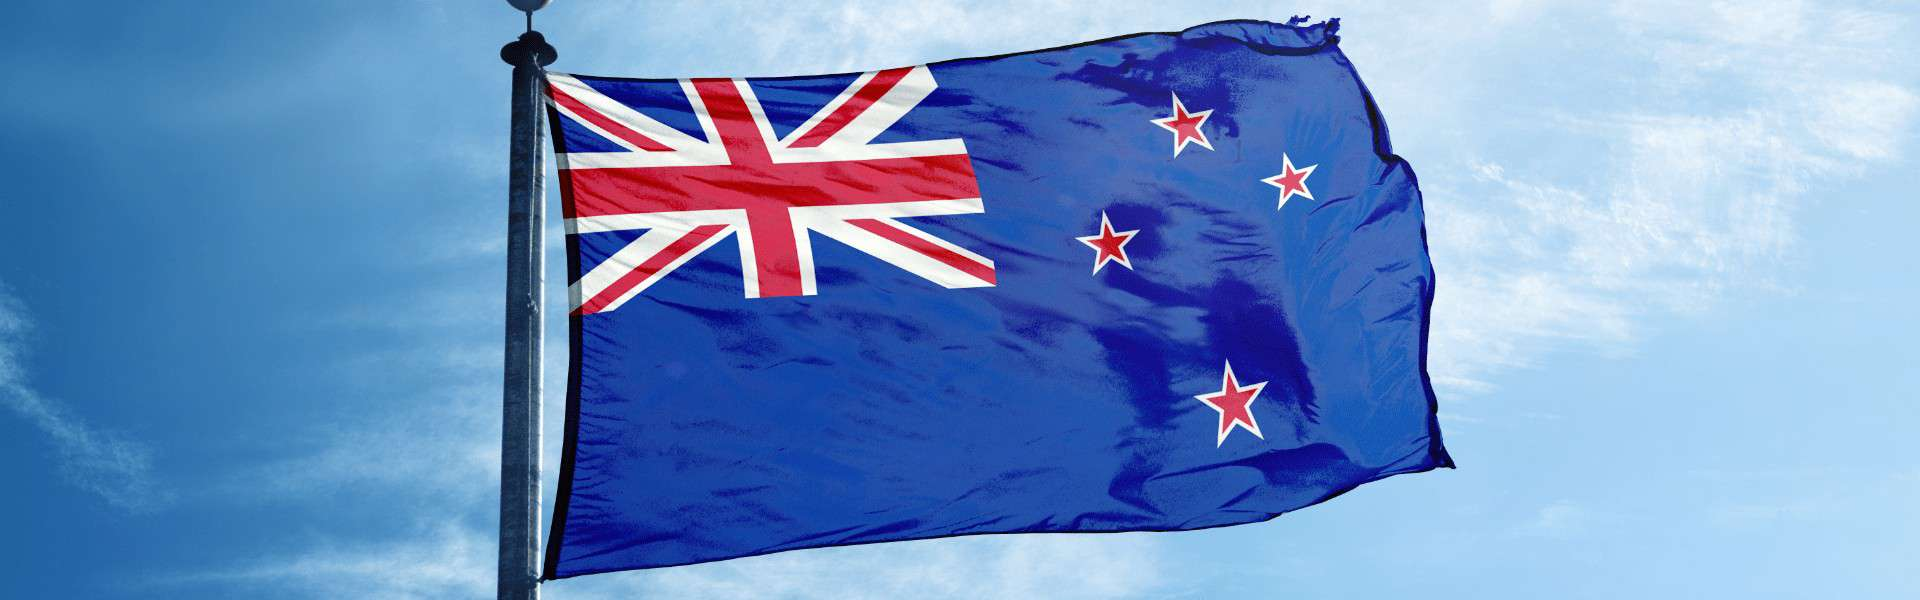 scholarships in New zealand, Study in New Zealand